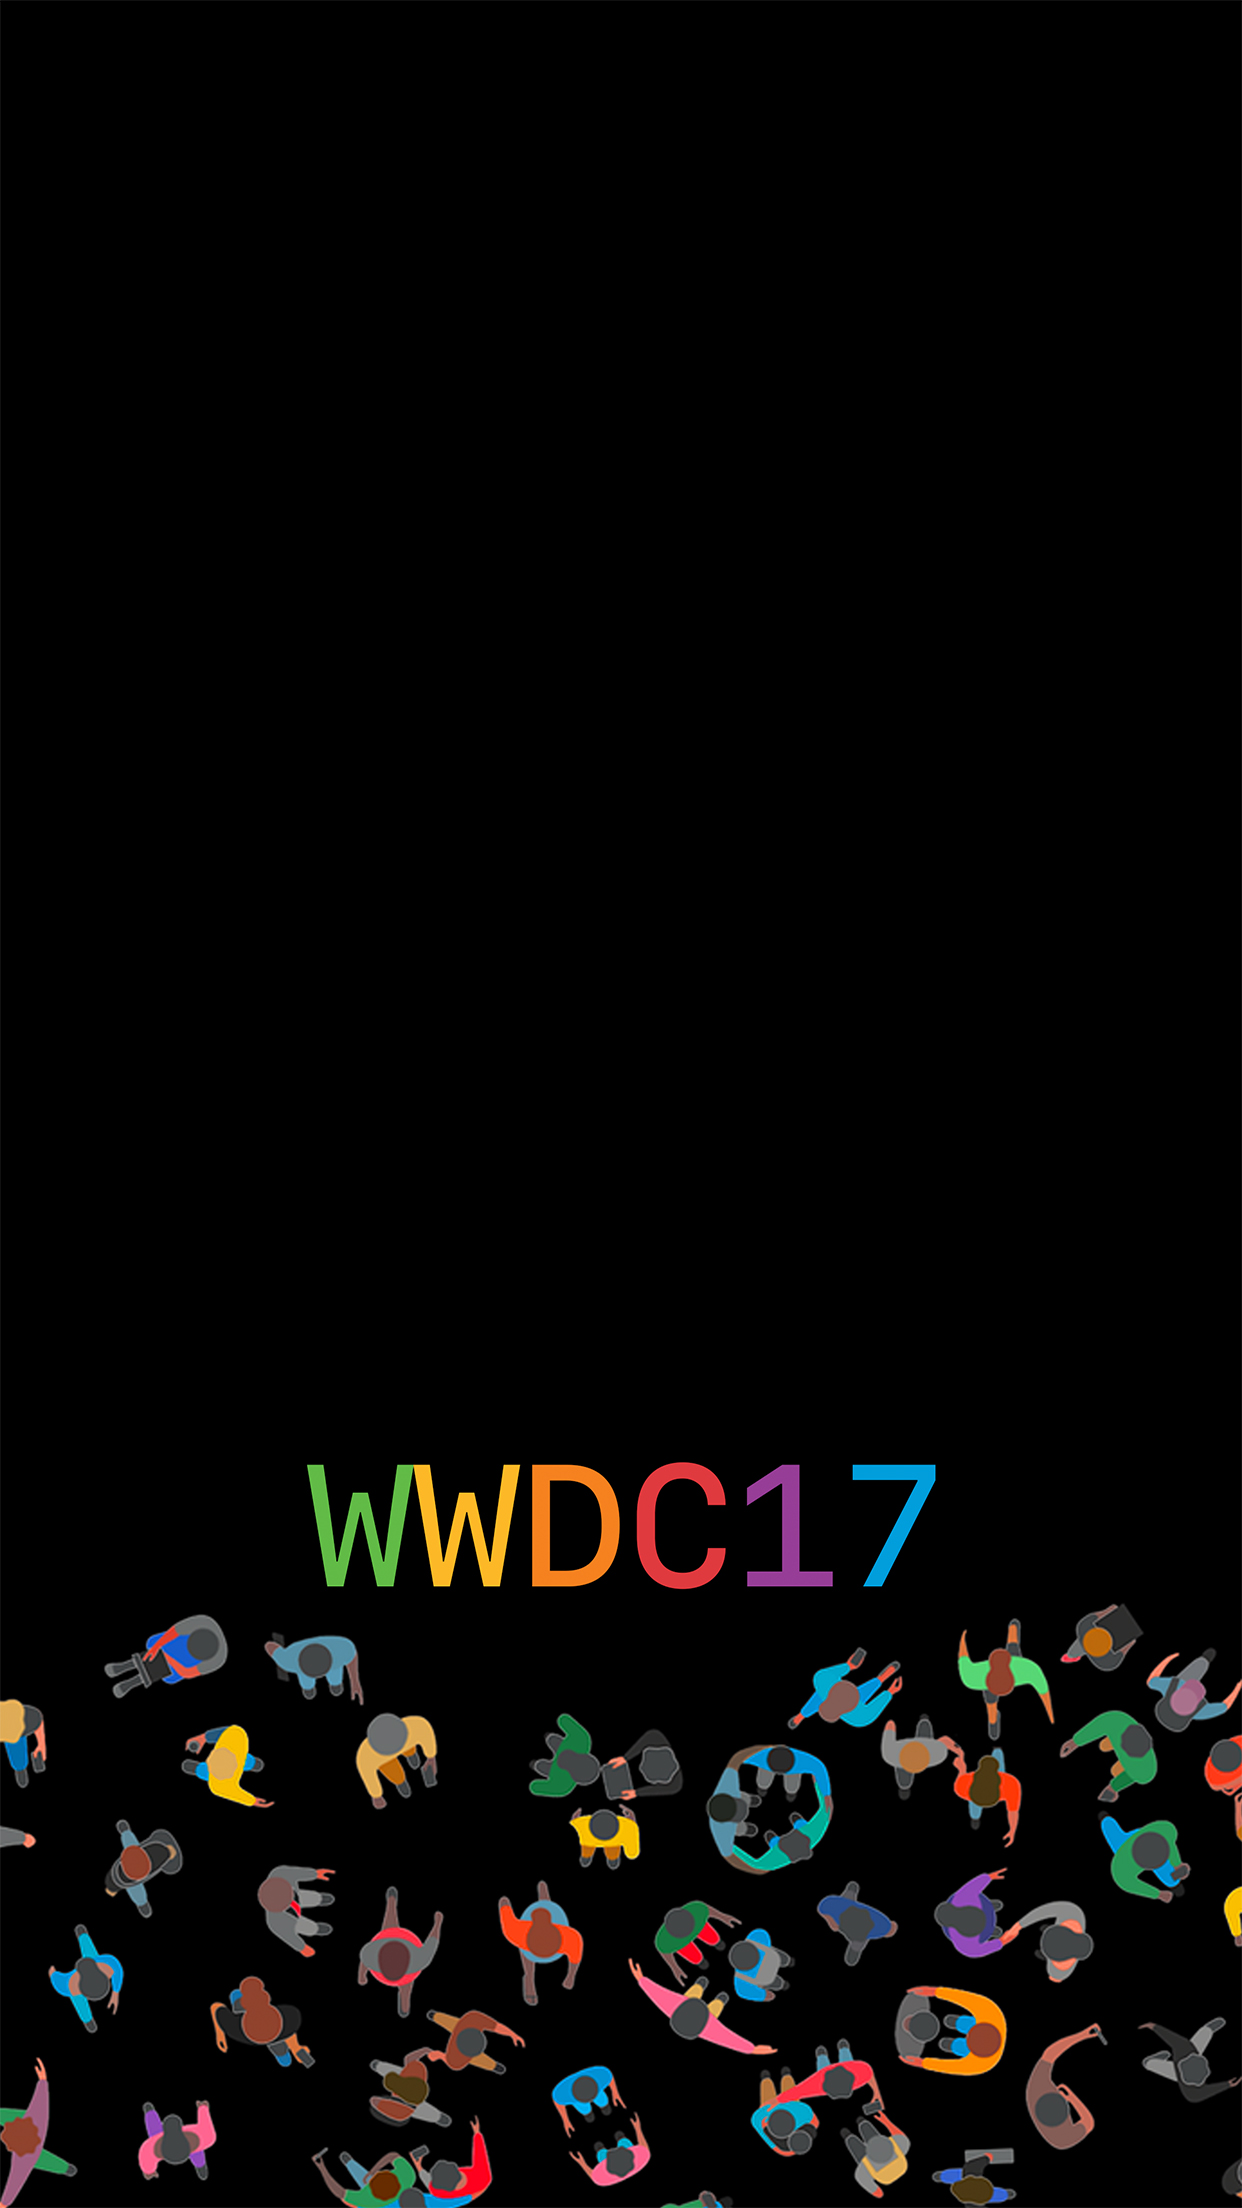 WWDC 2017 2 3Wallpapers iPhone Parallax WWDC 2017 : 2